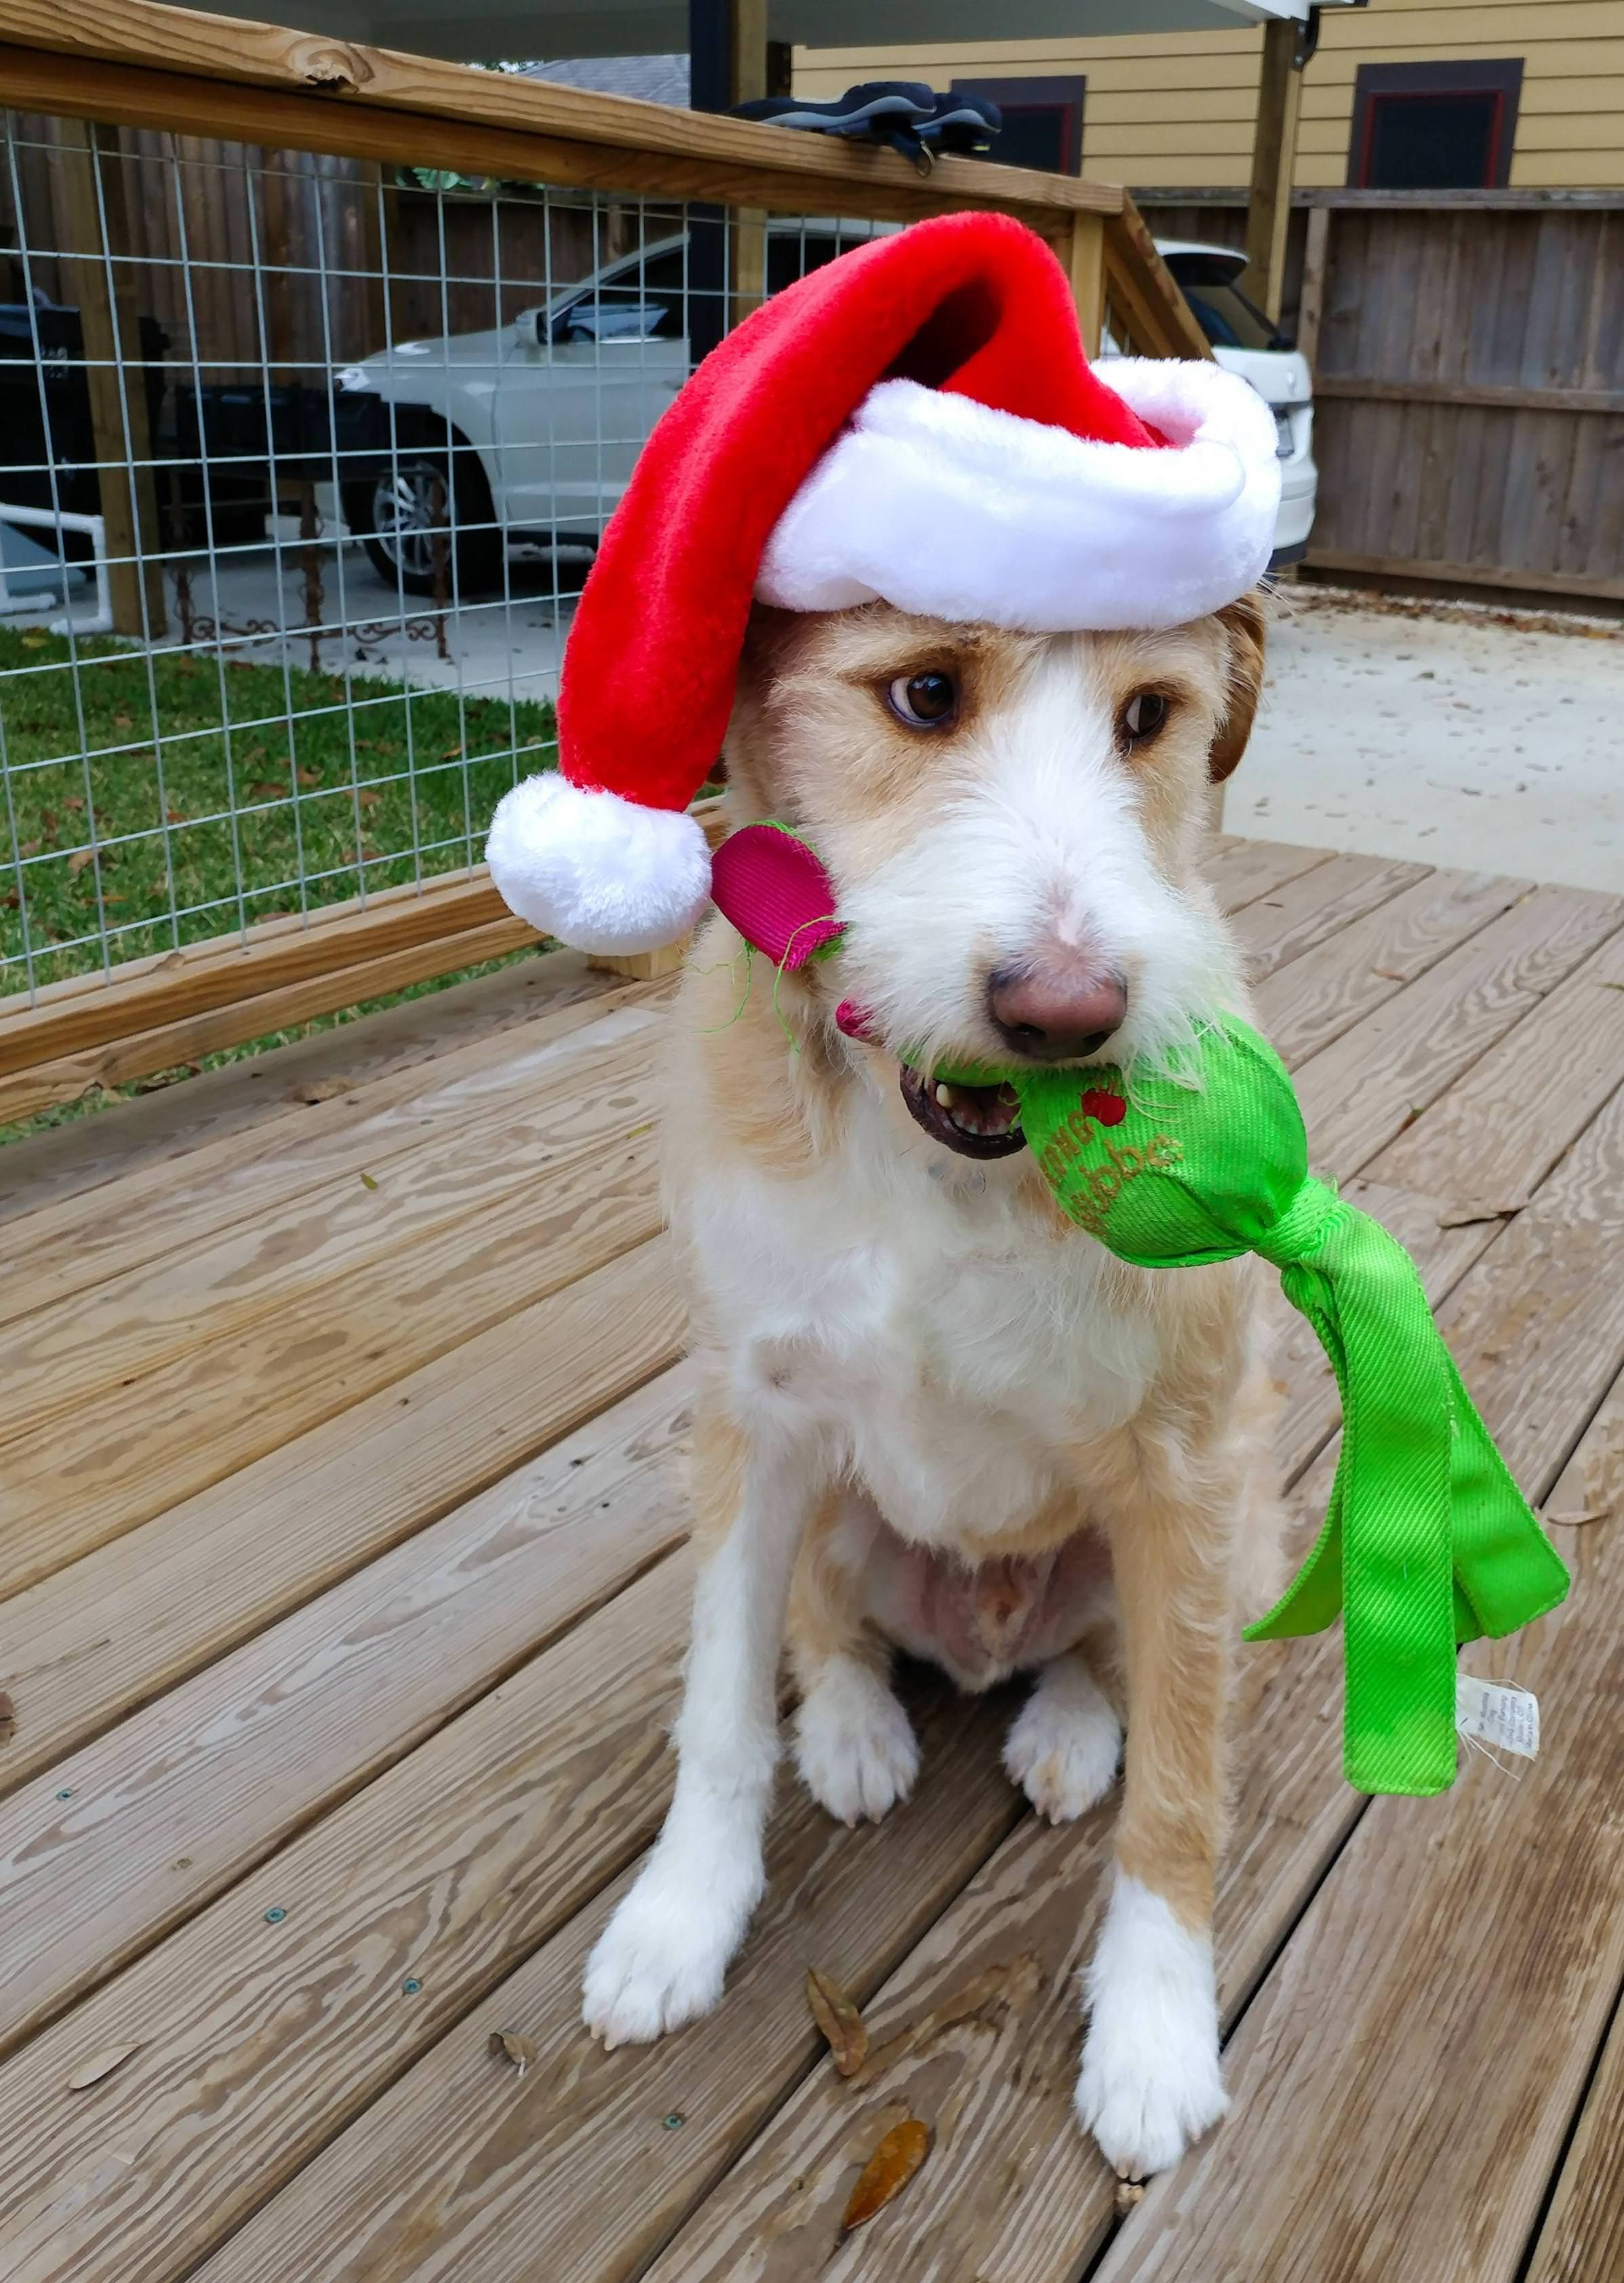 I don't think my dog was impressed with the Santa hat #dogs #pets #dog #Adopt #love #cute #animals #puppy